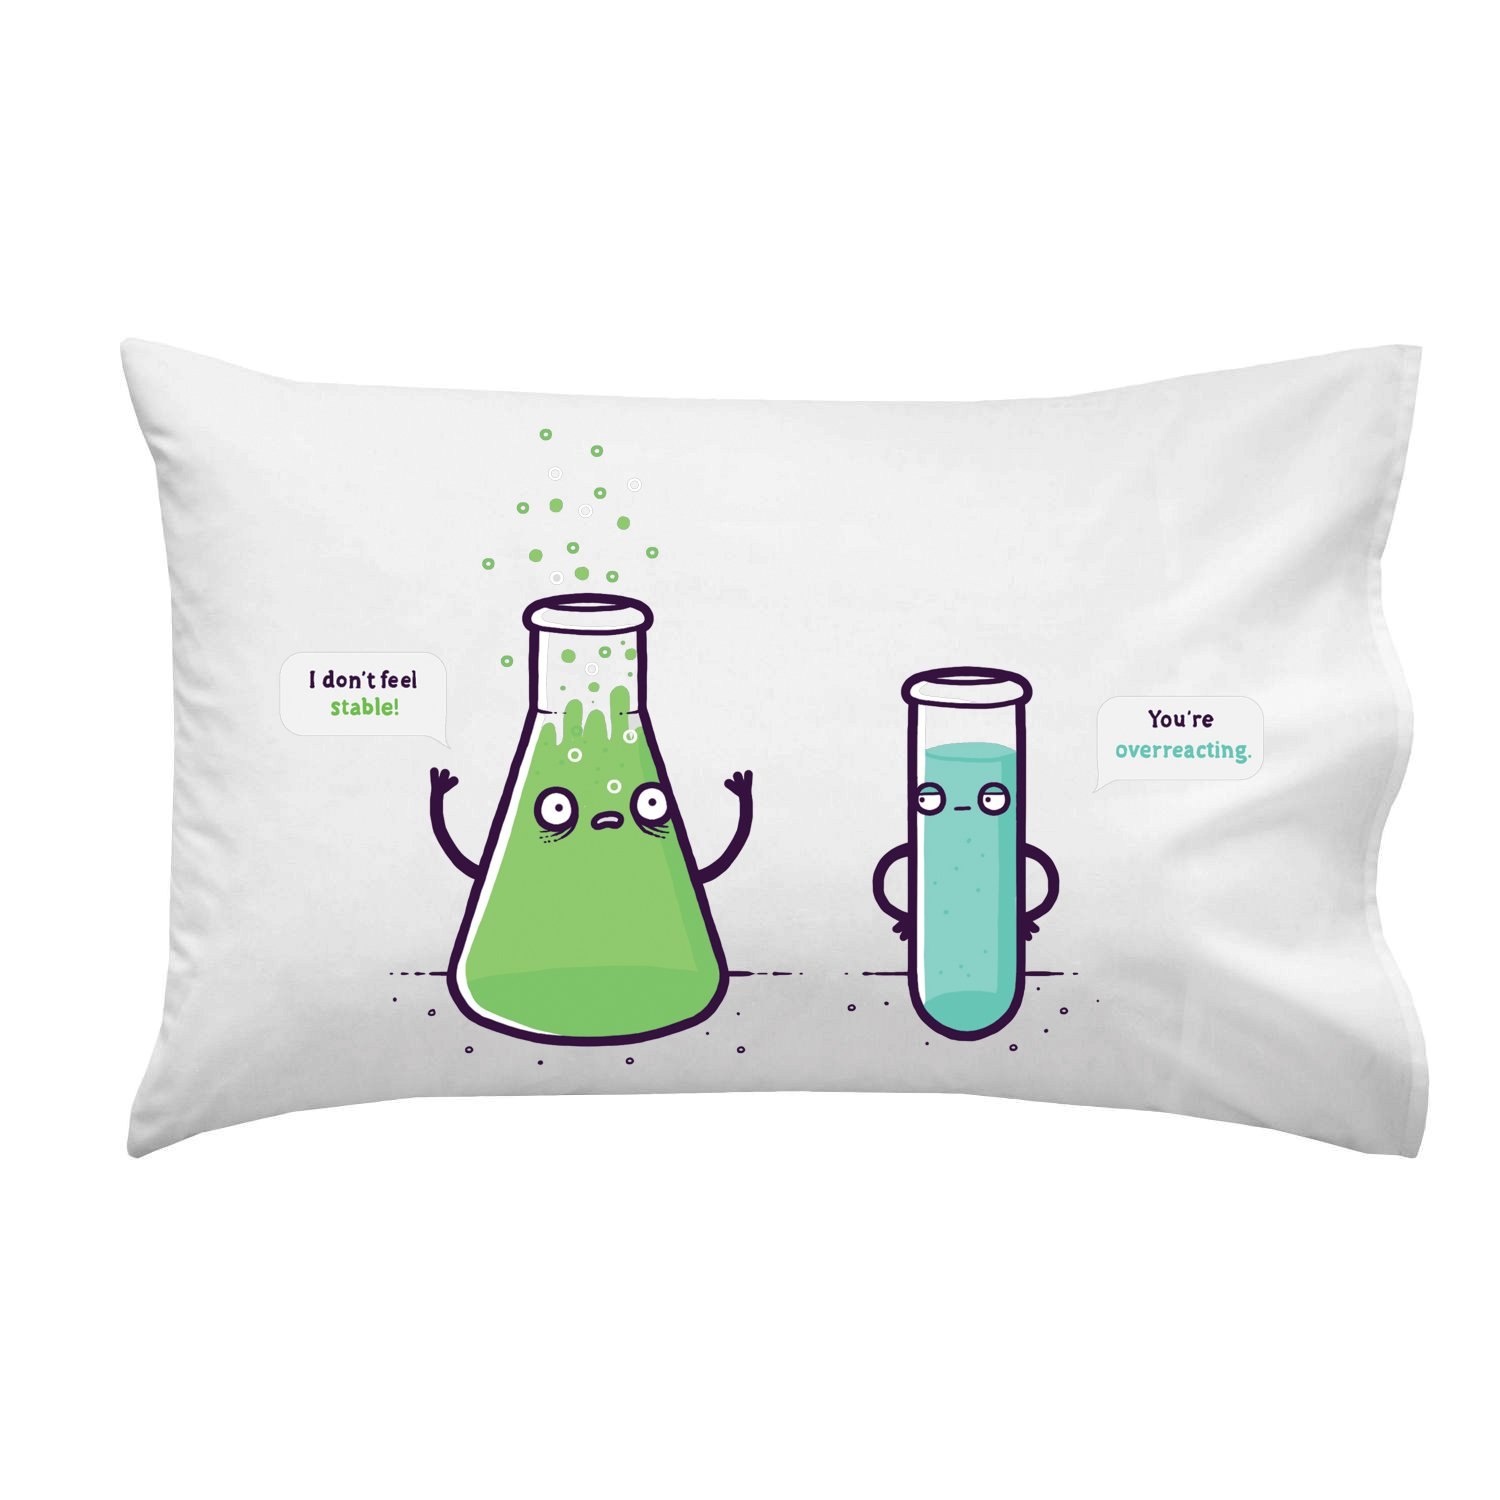 Hat Shark Overreacting Funny Chemistry Beaker Chemicals Don't Feel Stable - Pillow Case Single Pillowcase